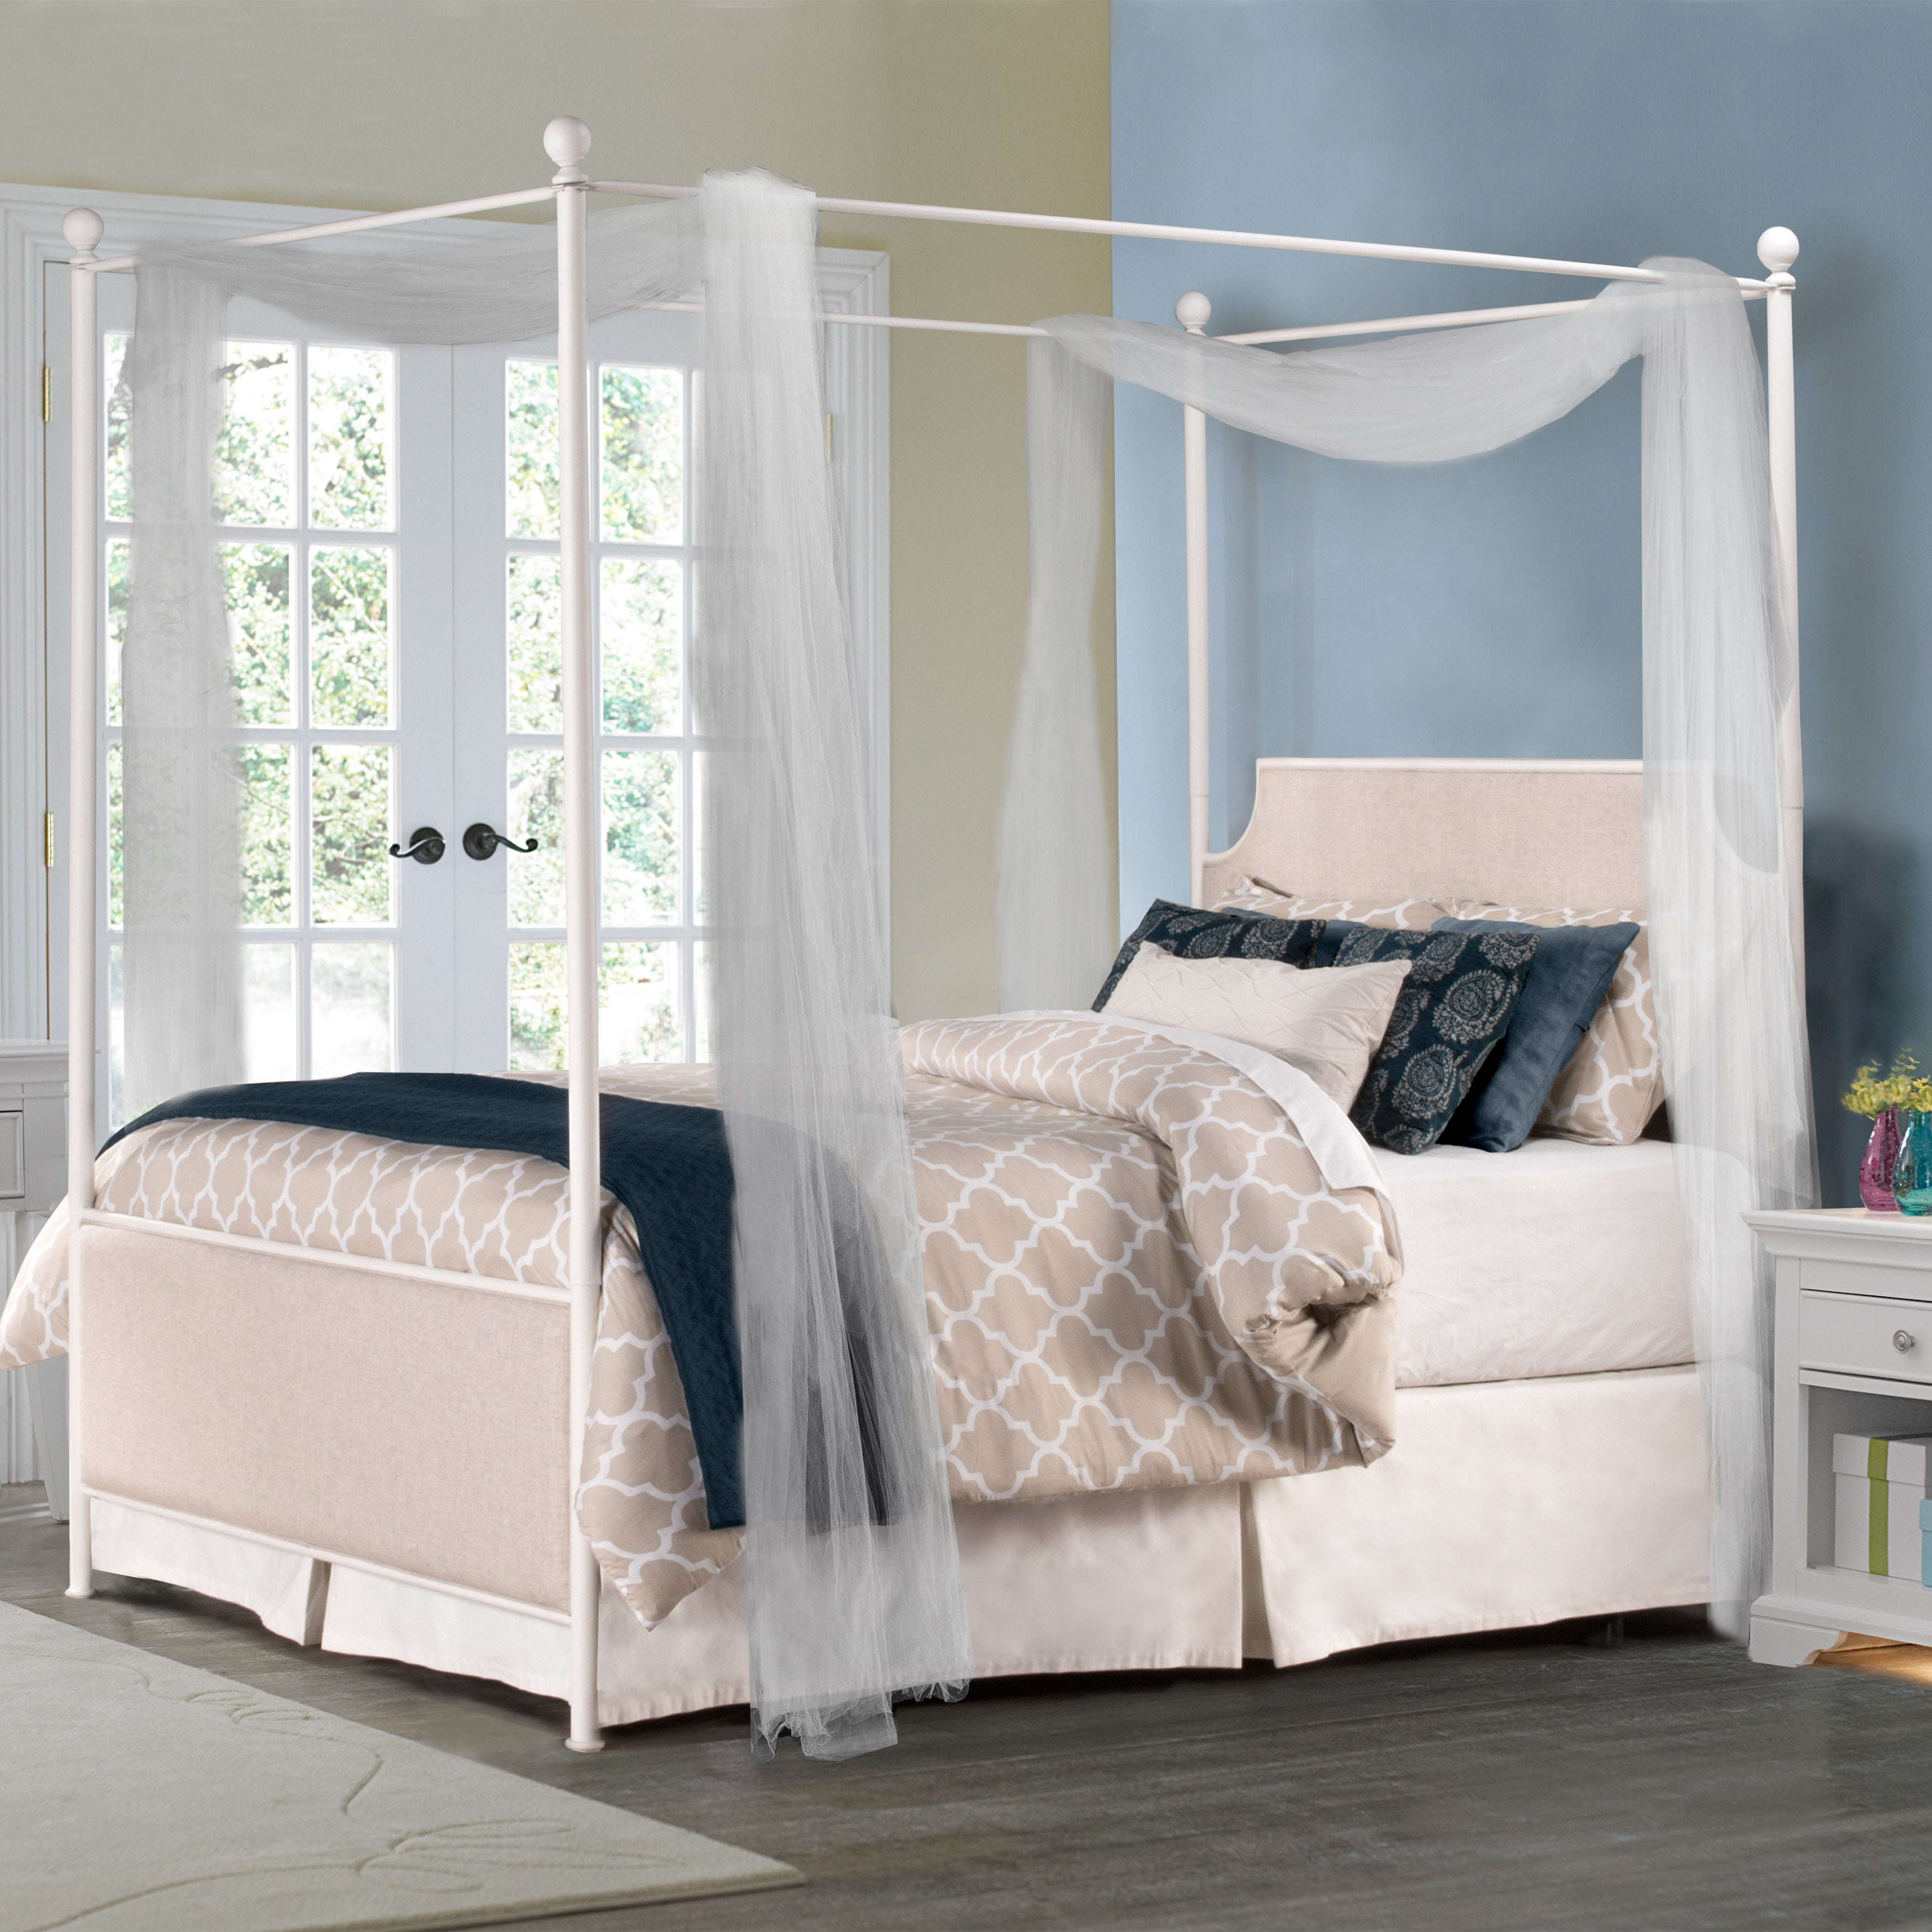 Hillsdale McArthur Off-white Canopy Bed Set (King), Beige